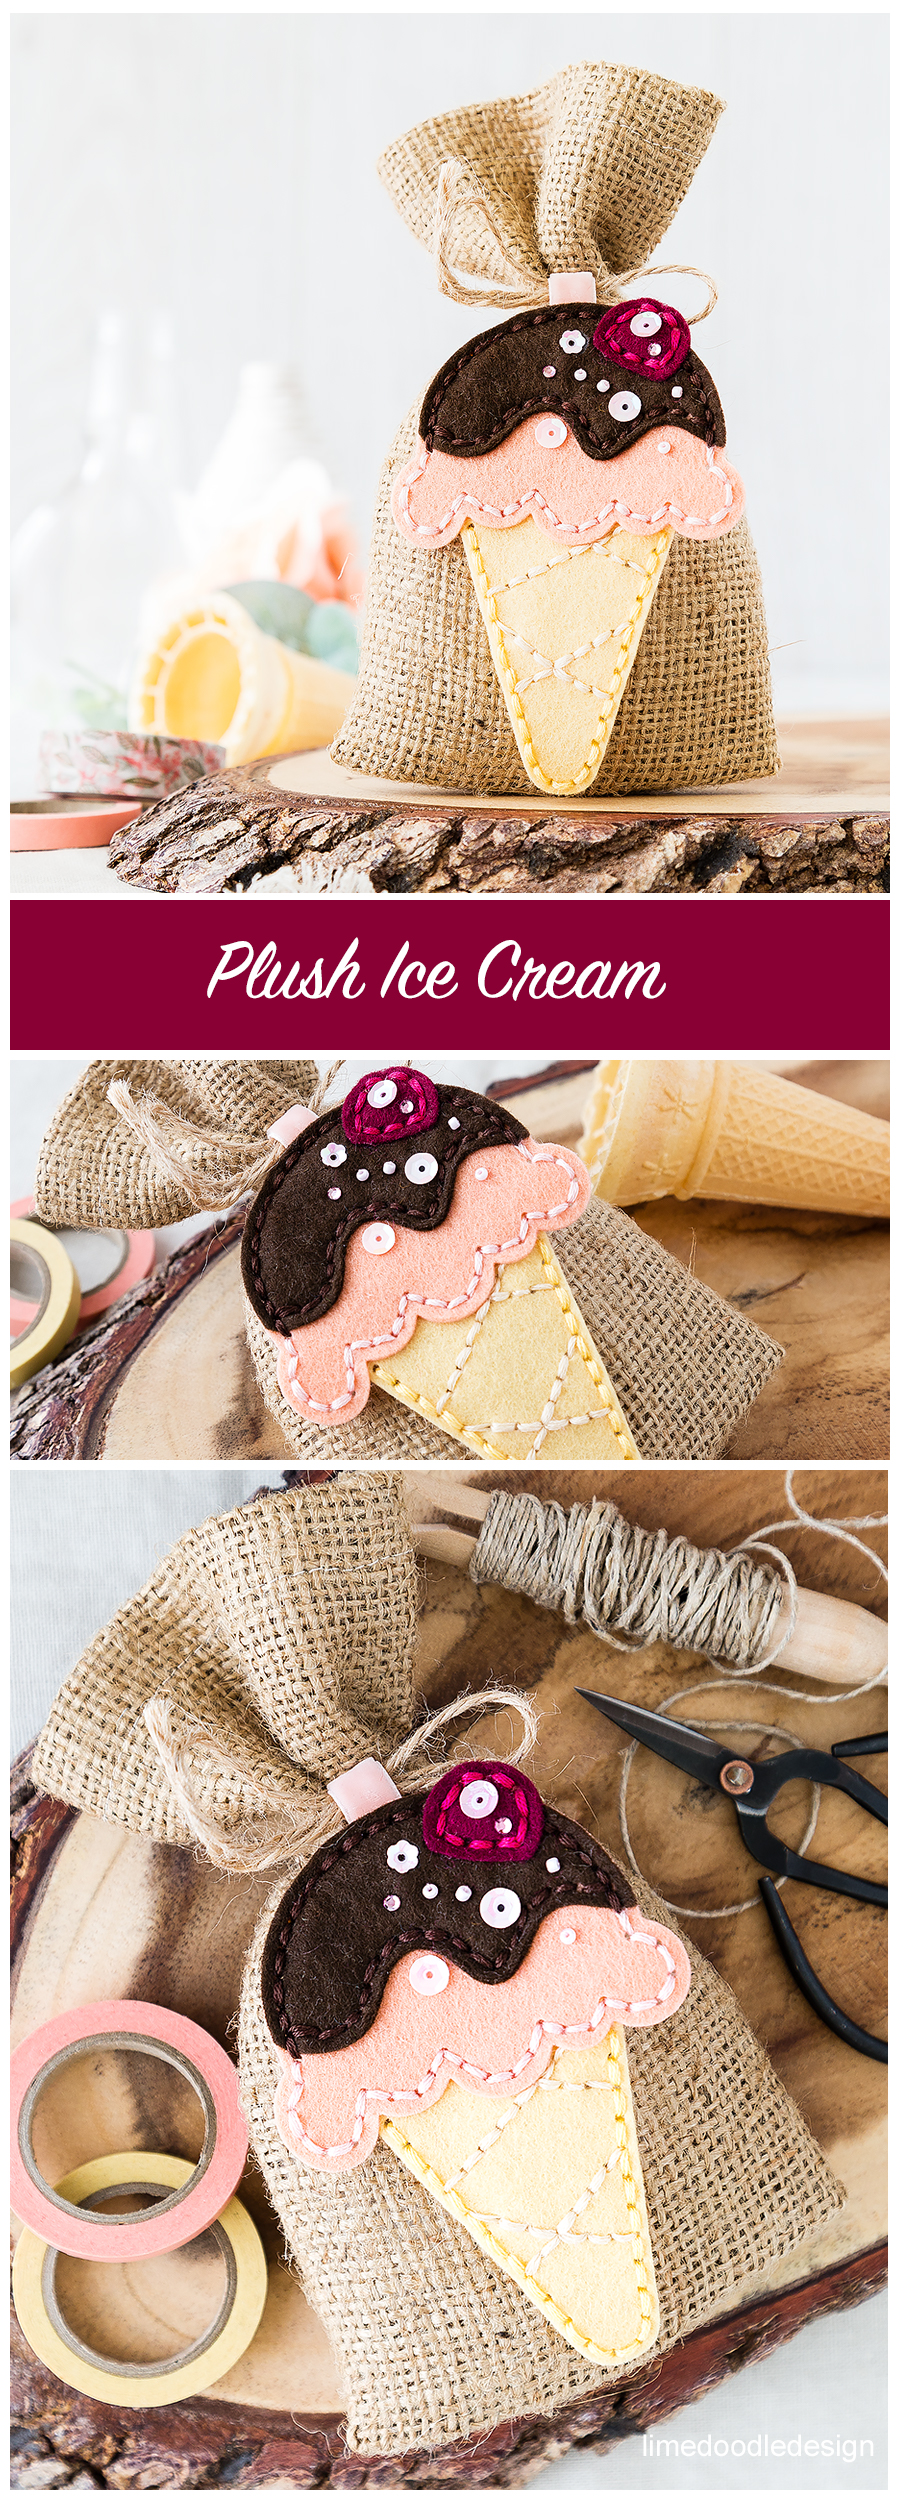 Natural fabrics and soft ice cream tones felt plush. Find out more by clicking on the following link: https://limedoodledesign.com/2016/07/natural-fabrics-and-soft-muted-ice-cream-tones/